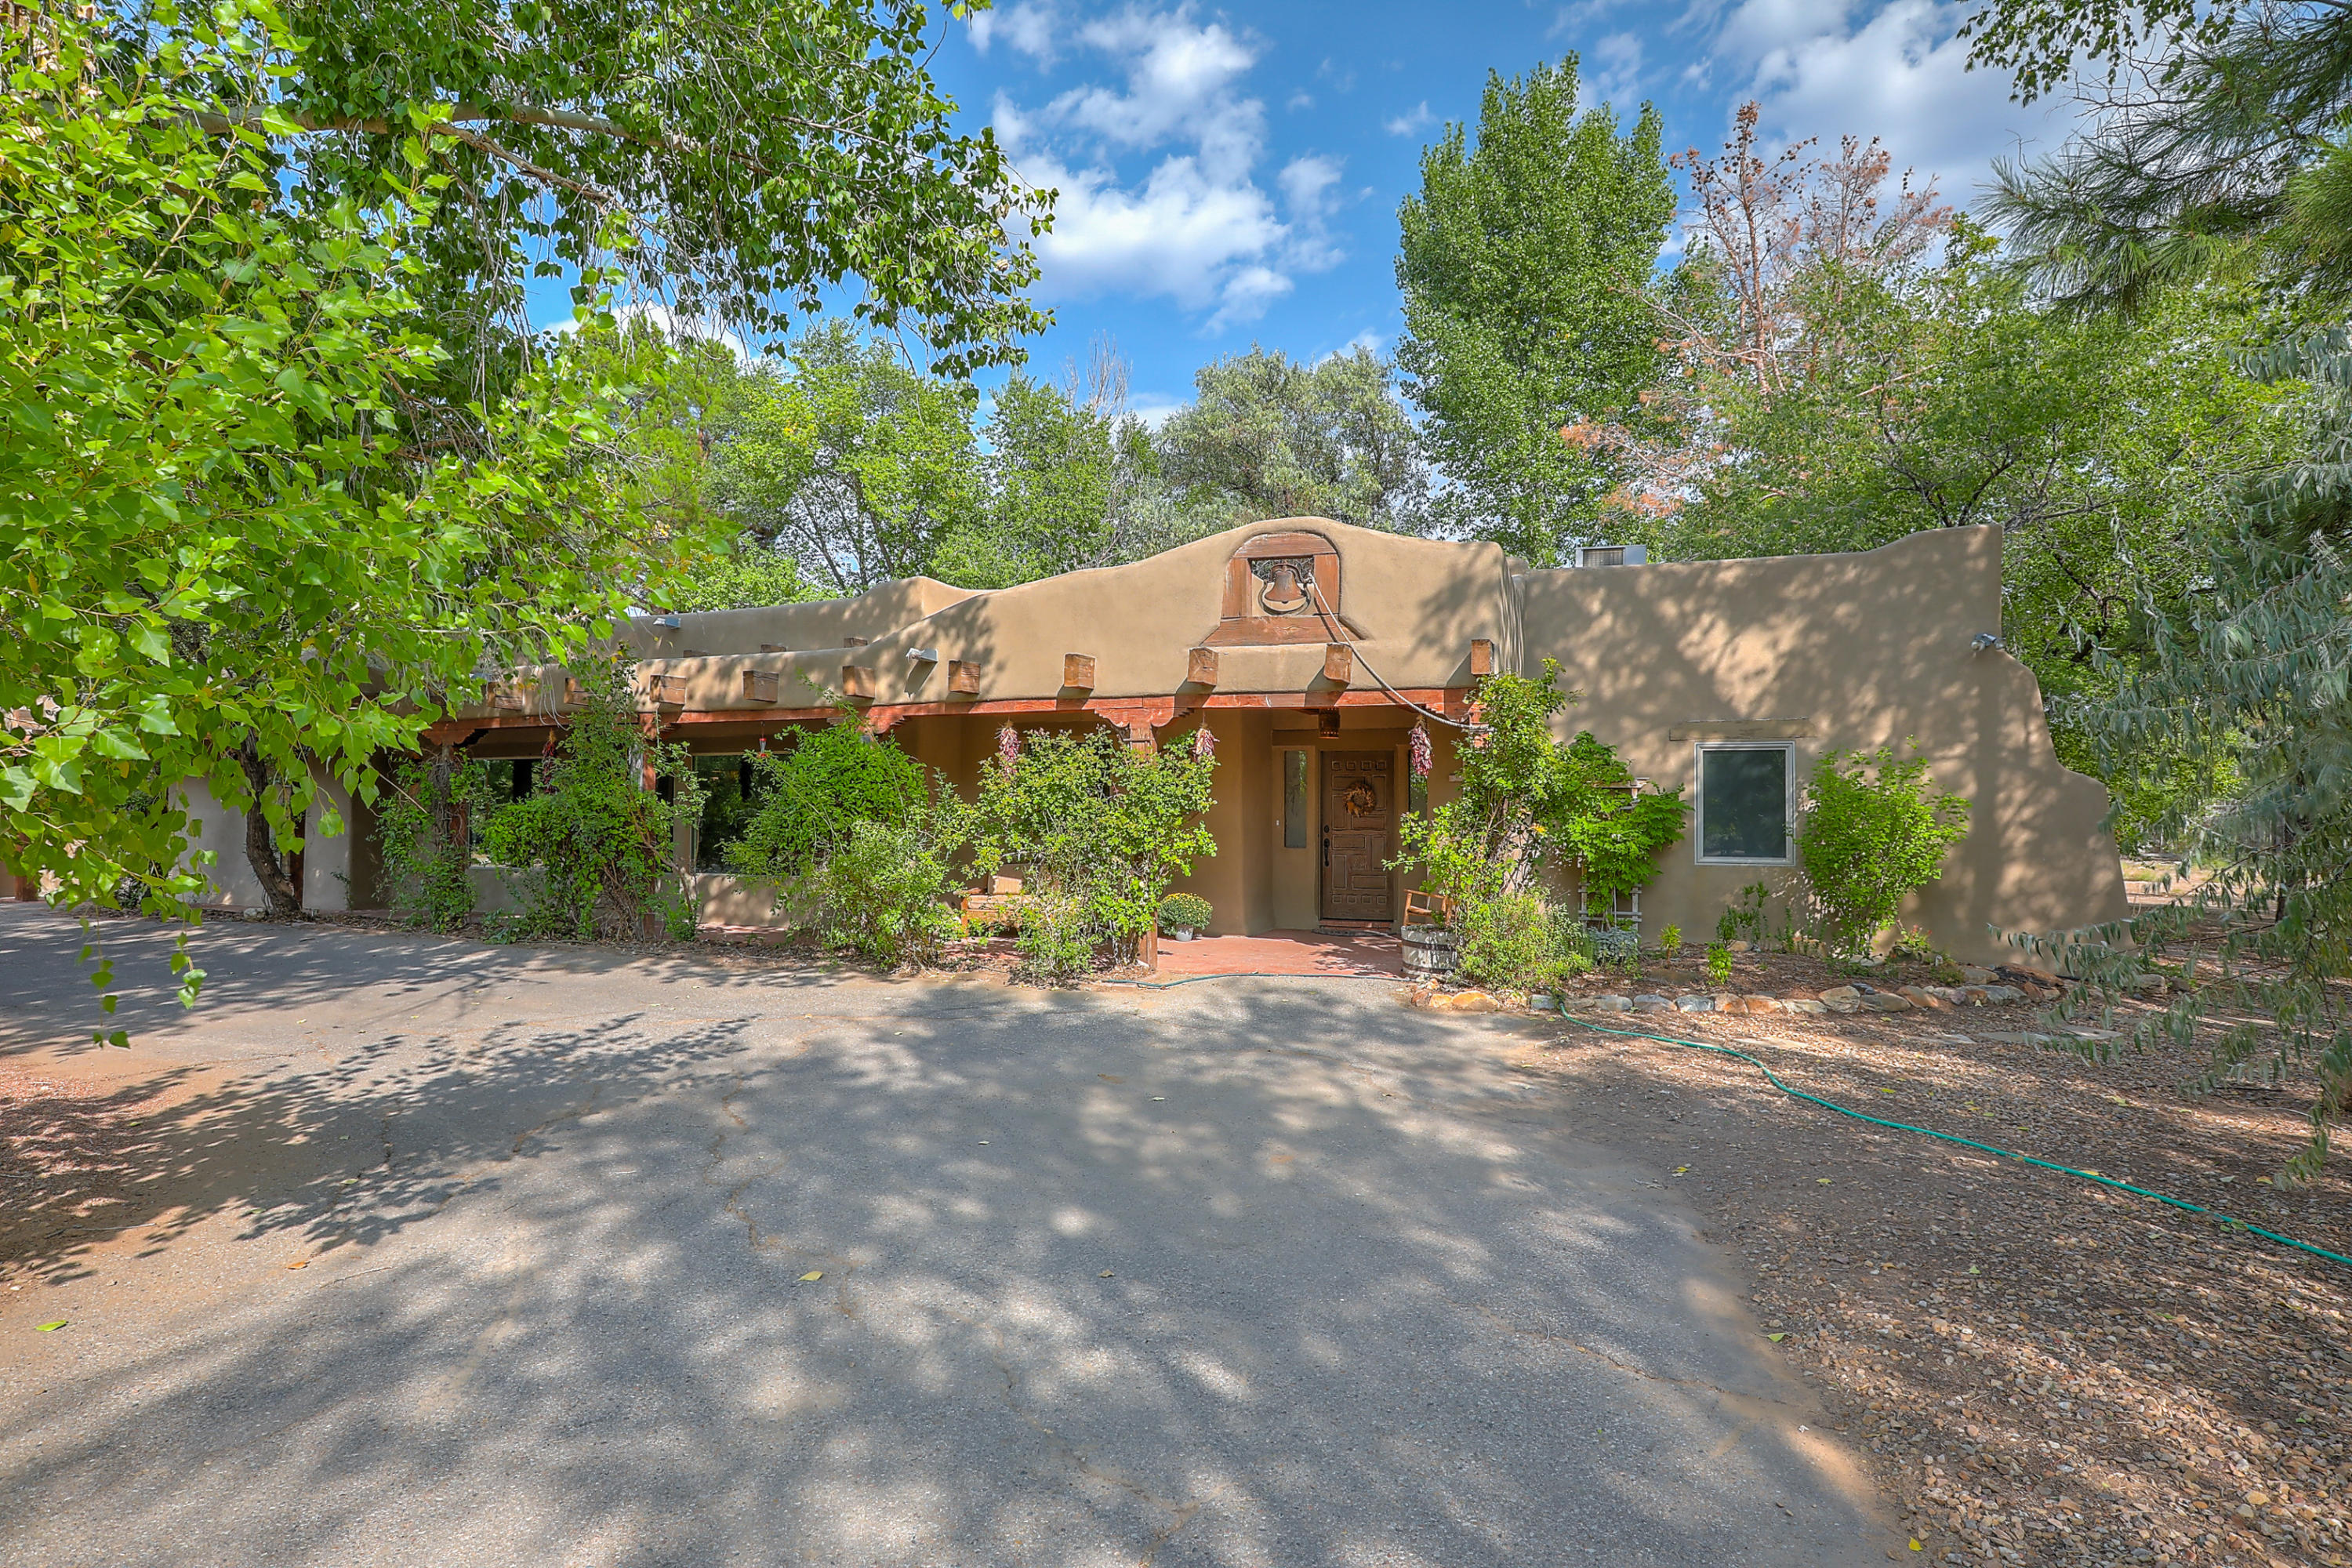 Corrales living just minutes from Albuquerque. This 2.85 acre property offers space for animals and room to roam. Remodeled in 2013 and offers upscale amenities including a chef's kitchen, open concept great room, lots of windows and a dramatic fireplace. Brick floors and wood beams offer the SW charm while the upscale amenities make life here easy. Enjoy the large master bathroom, separate walk in closet and outside patio access. The sitting room/study off the master is cozy with its own fireplace. The property includes a barn, exterior storage, piped fence horse pens and plenty of acreage for a dressage or jumping arena. This will be someone's equestrian dream. The neighborhood boasts big lots, flat land with green grass and trees, plus just minutes to town for an easy, quick commute.